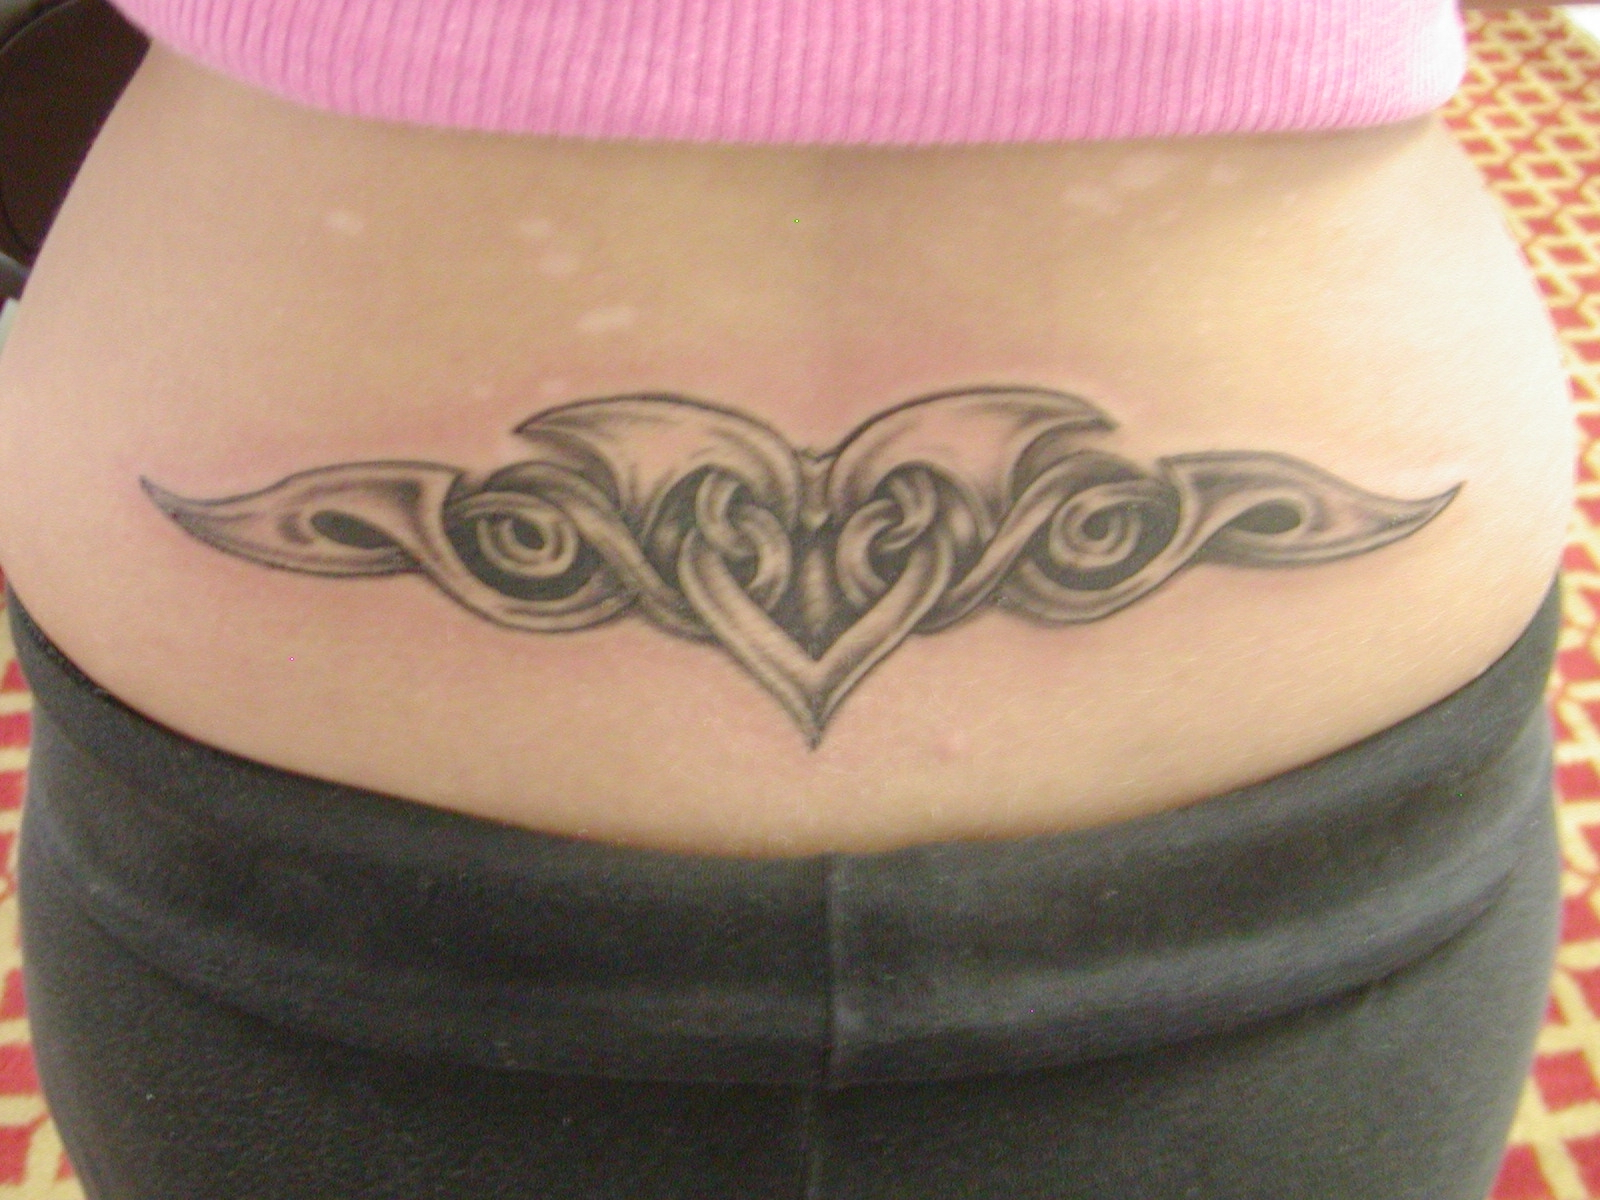 Girl Lower Back Tattoo Designs Girl Lower Back Tattoo Designs – Best Tattoo Design